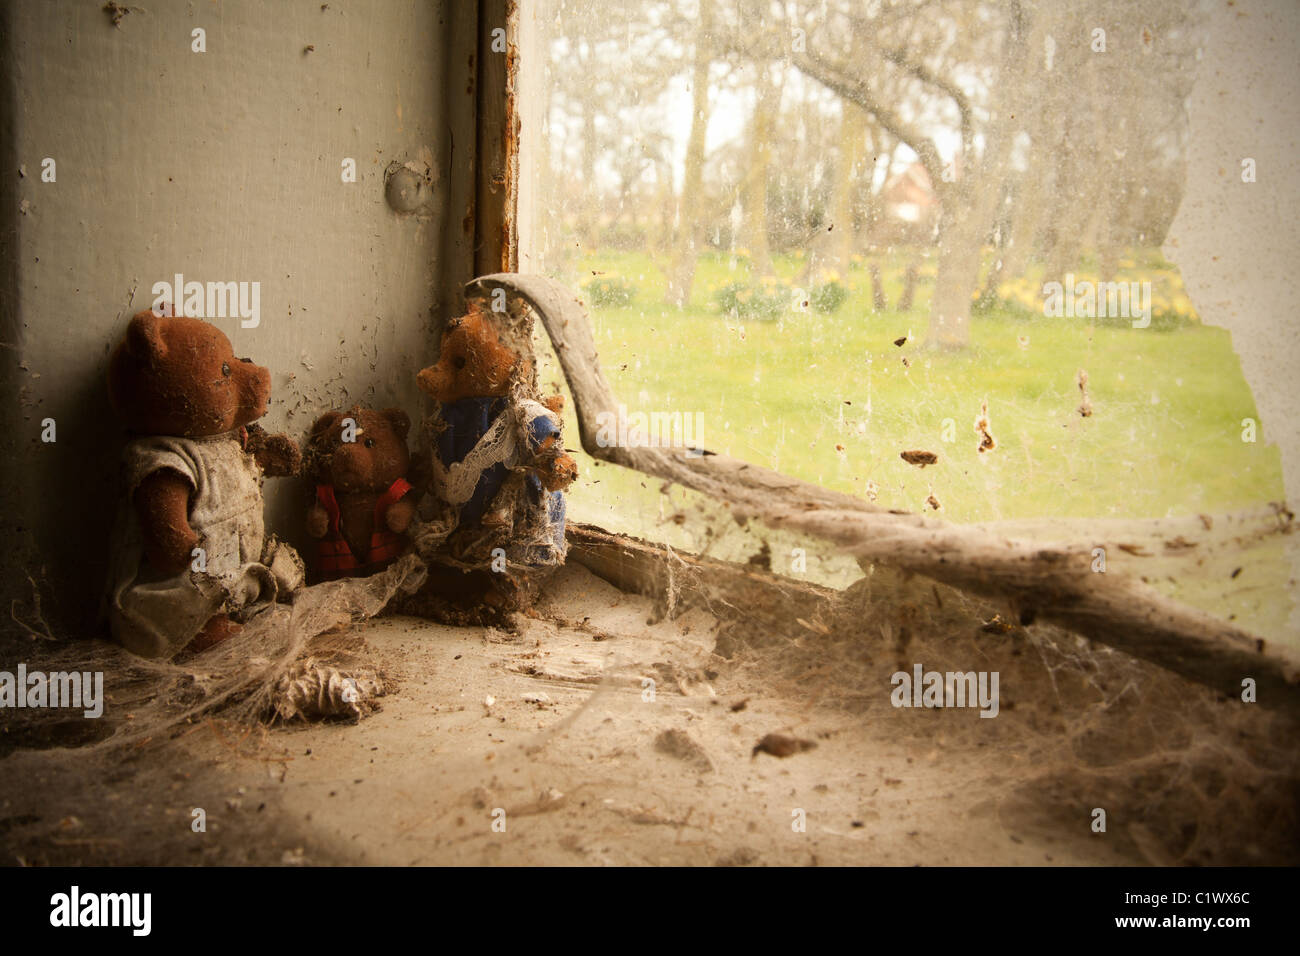 Old toy bears neglected on windowsill - Stock Image